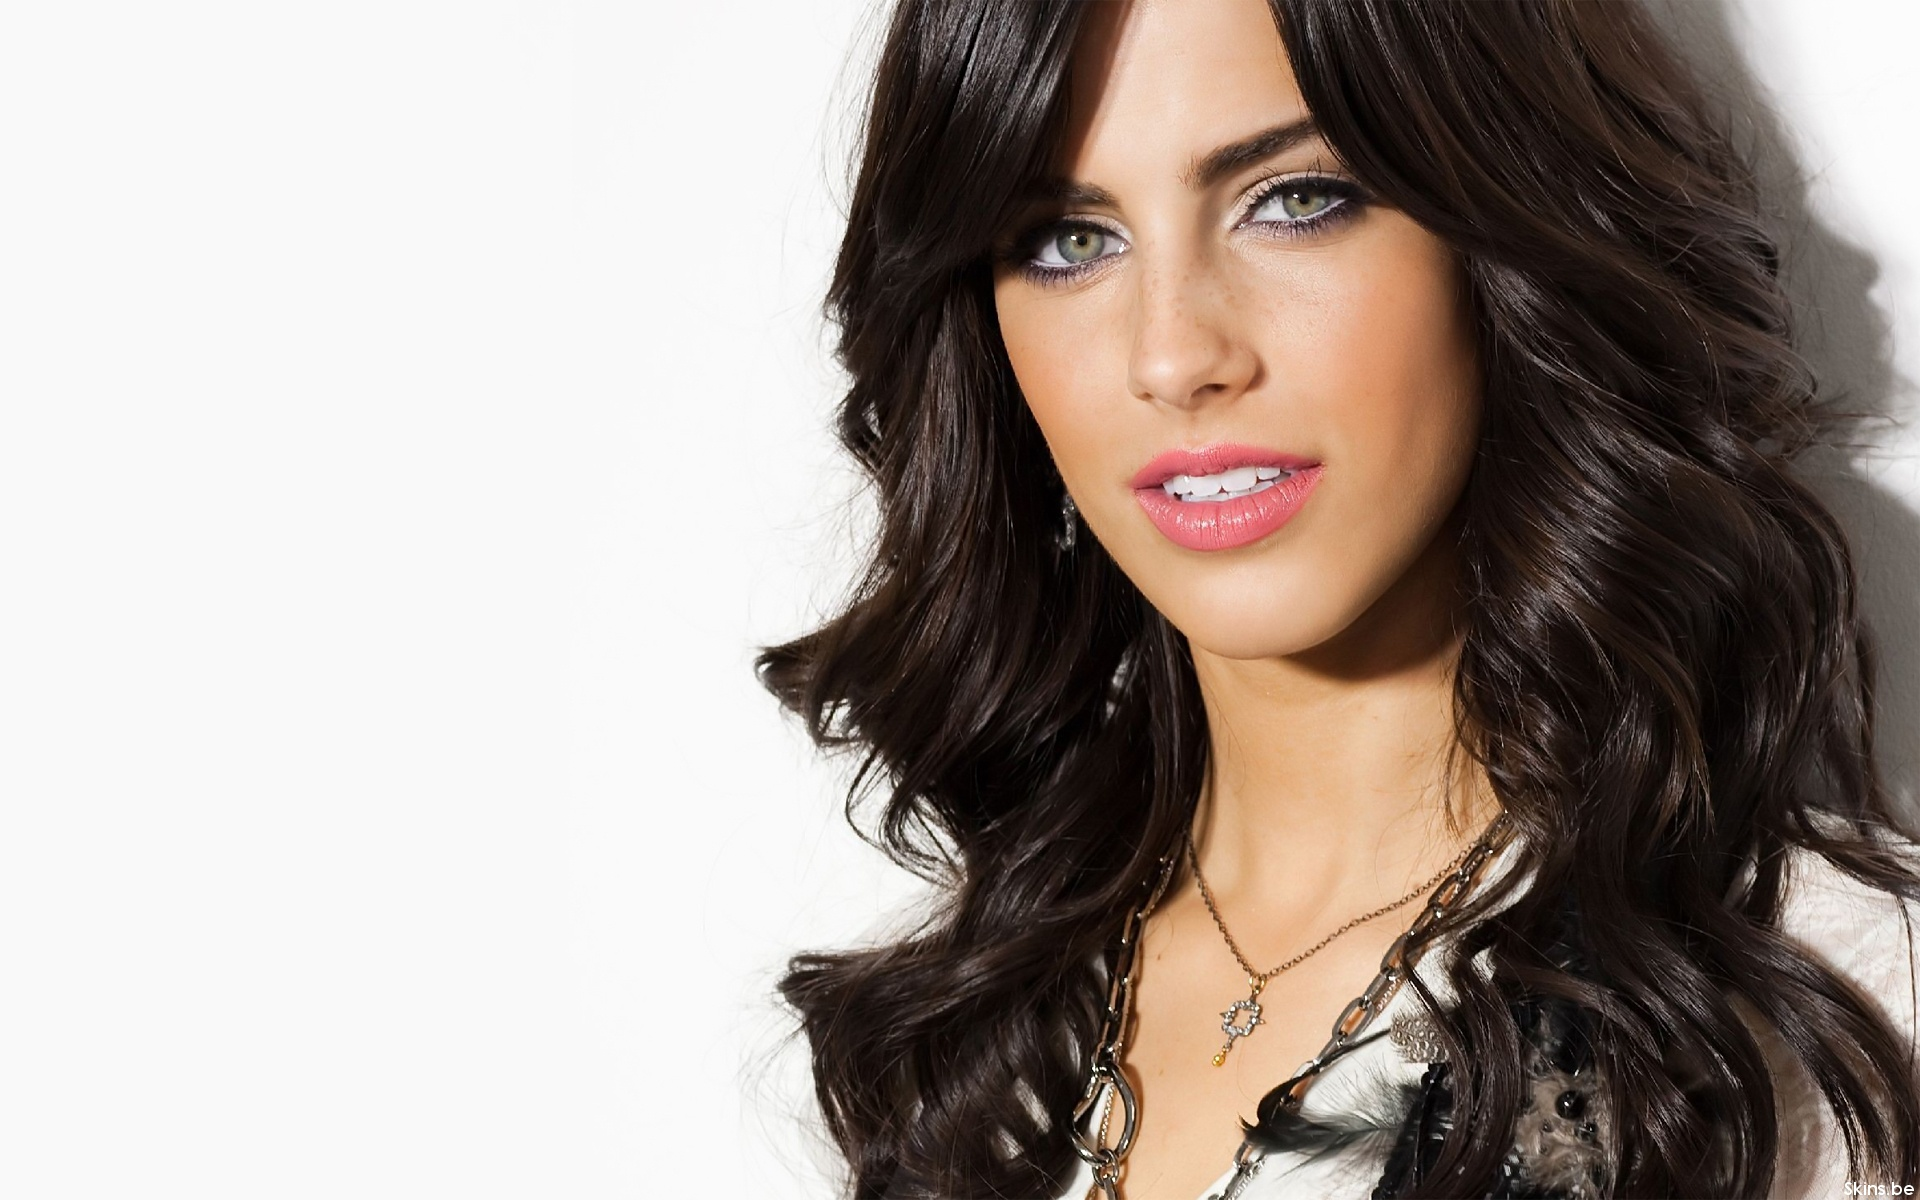 1920x1200 - Jessica Lowndes Wallpapers 5